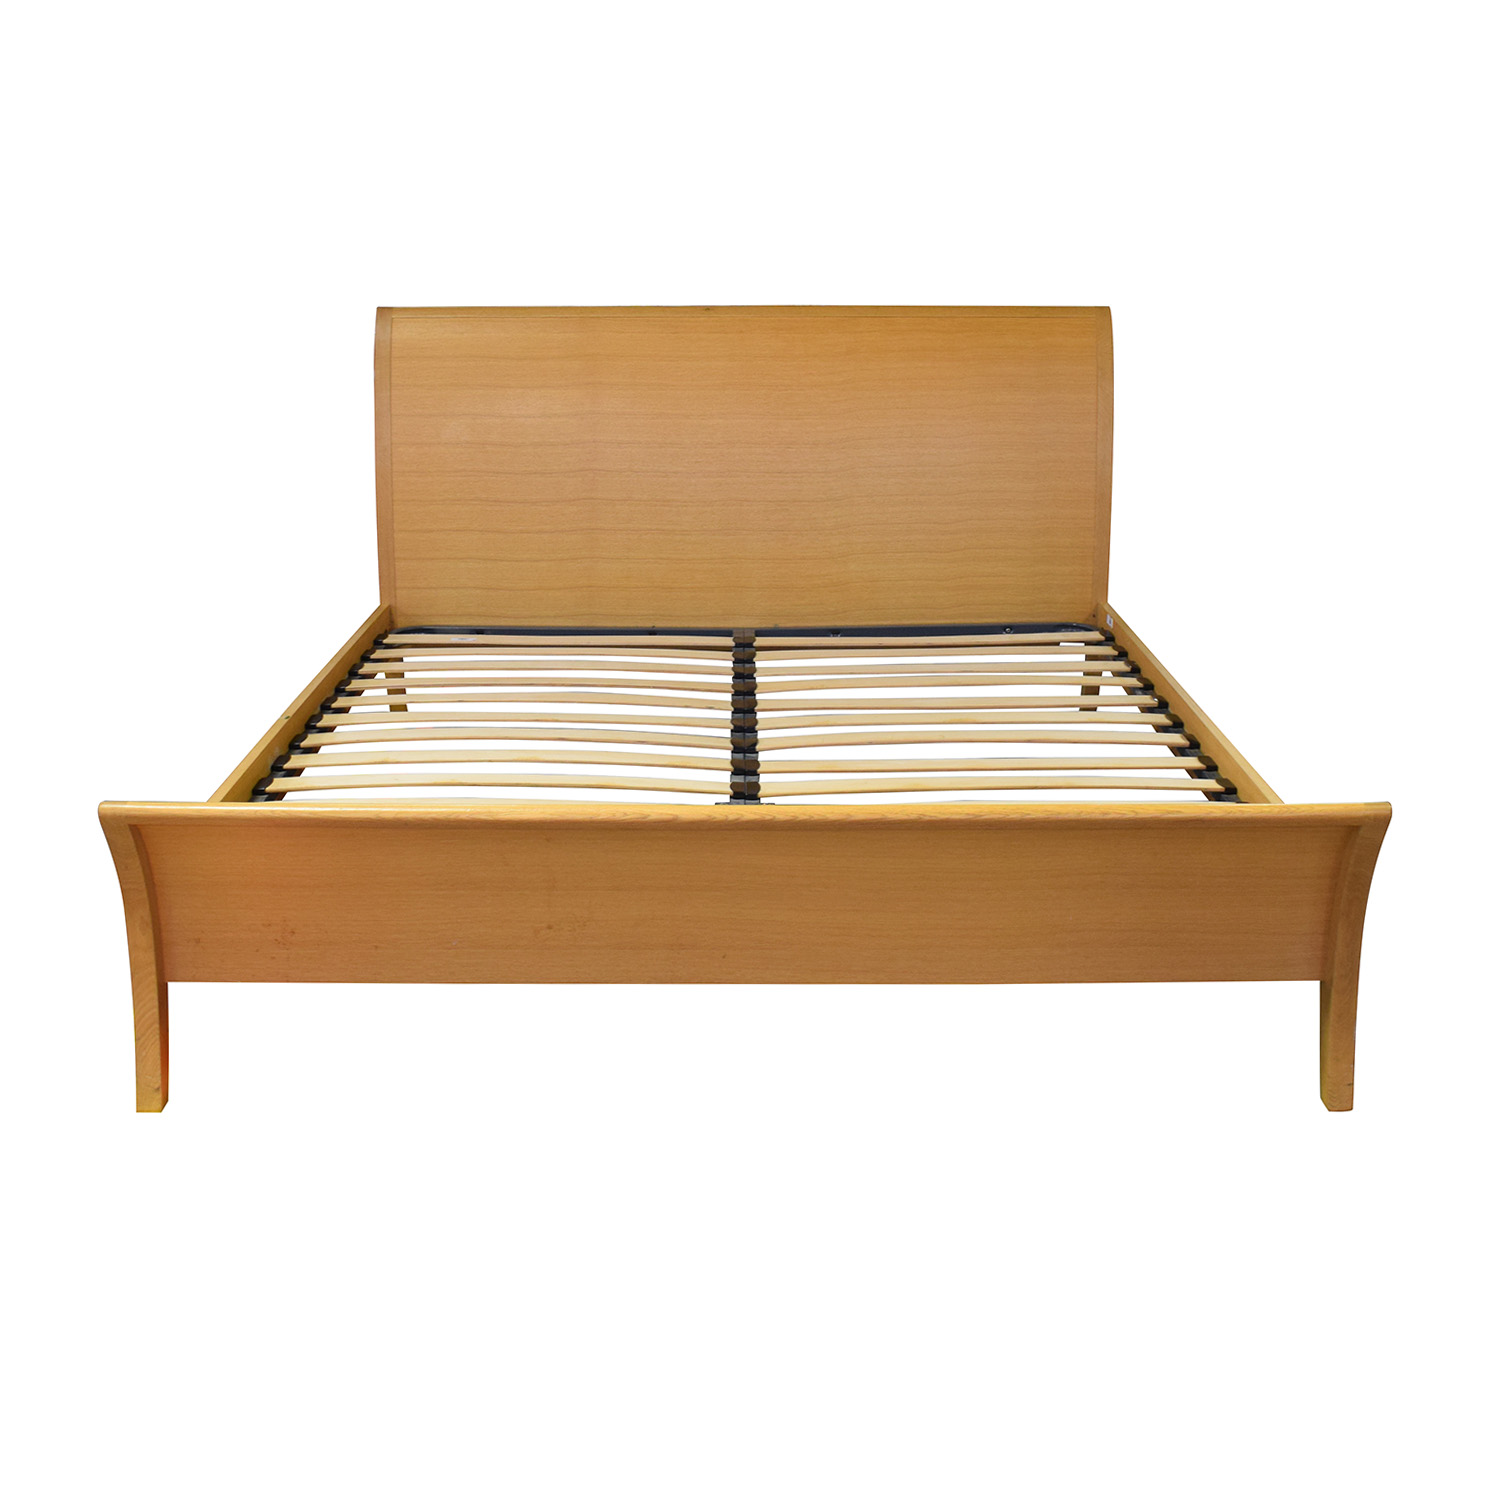 Bloomingdale's Bloomingdale's Beechwood King Size Platform Bed price